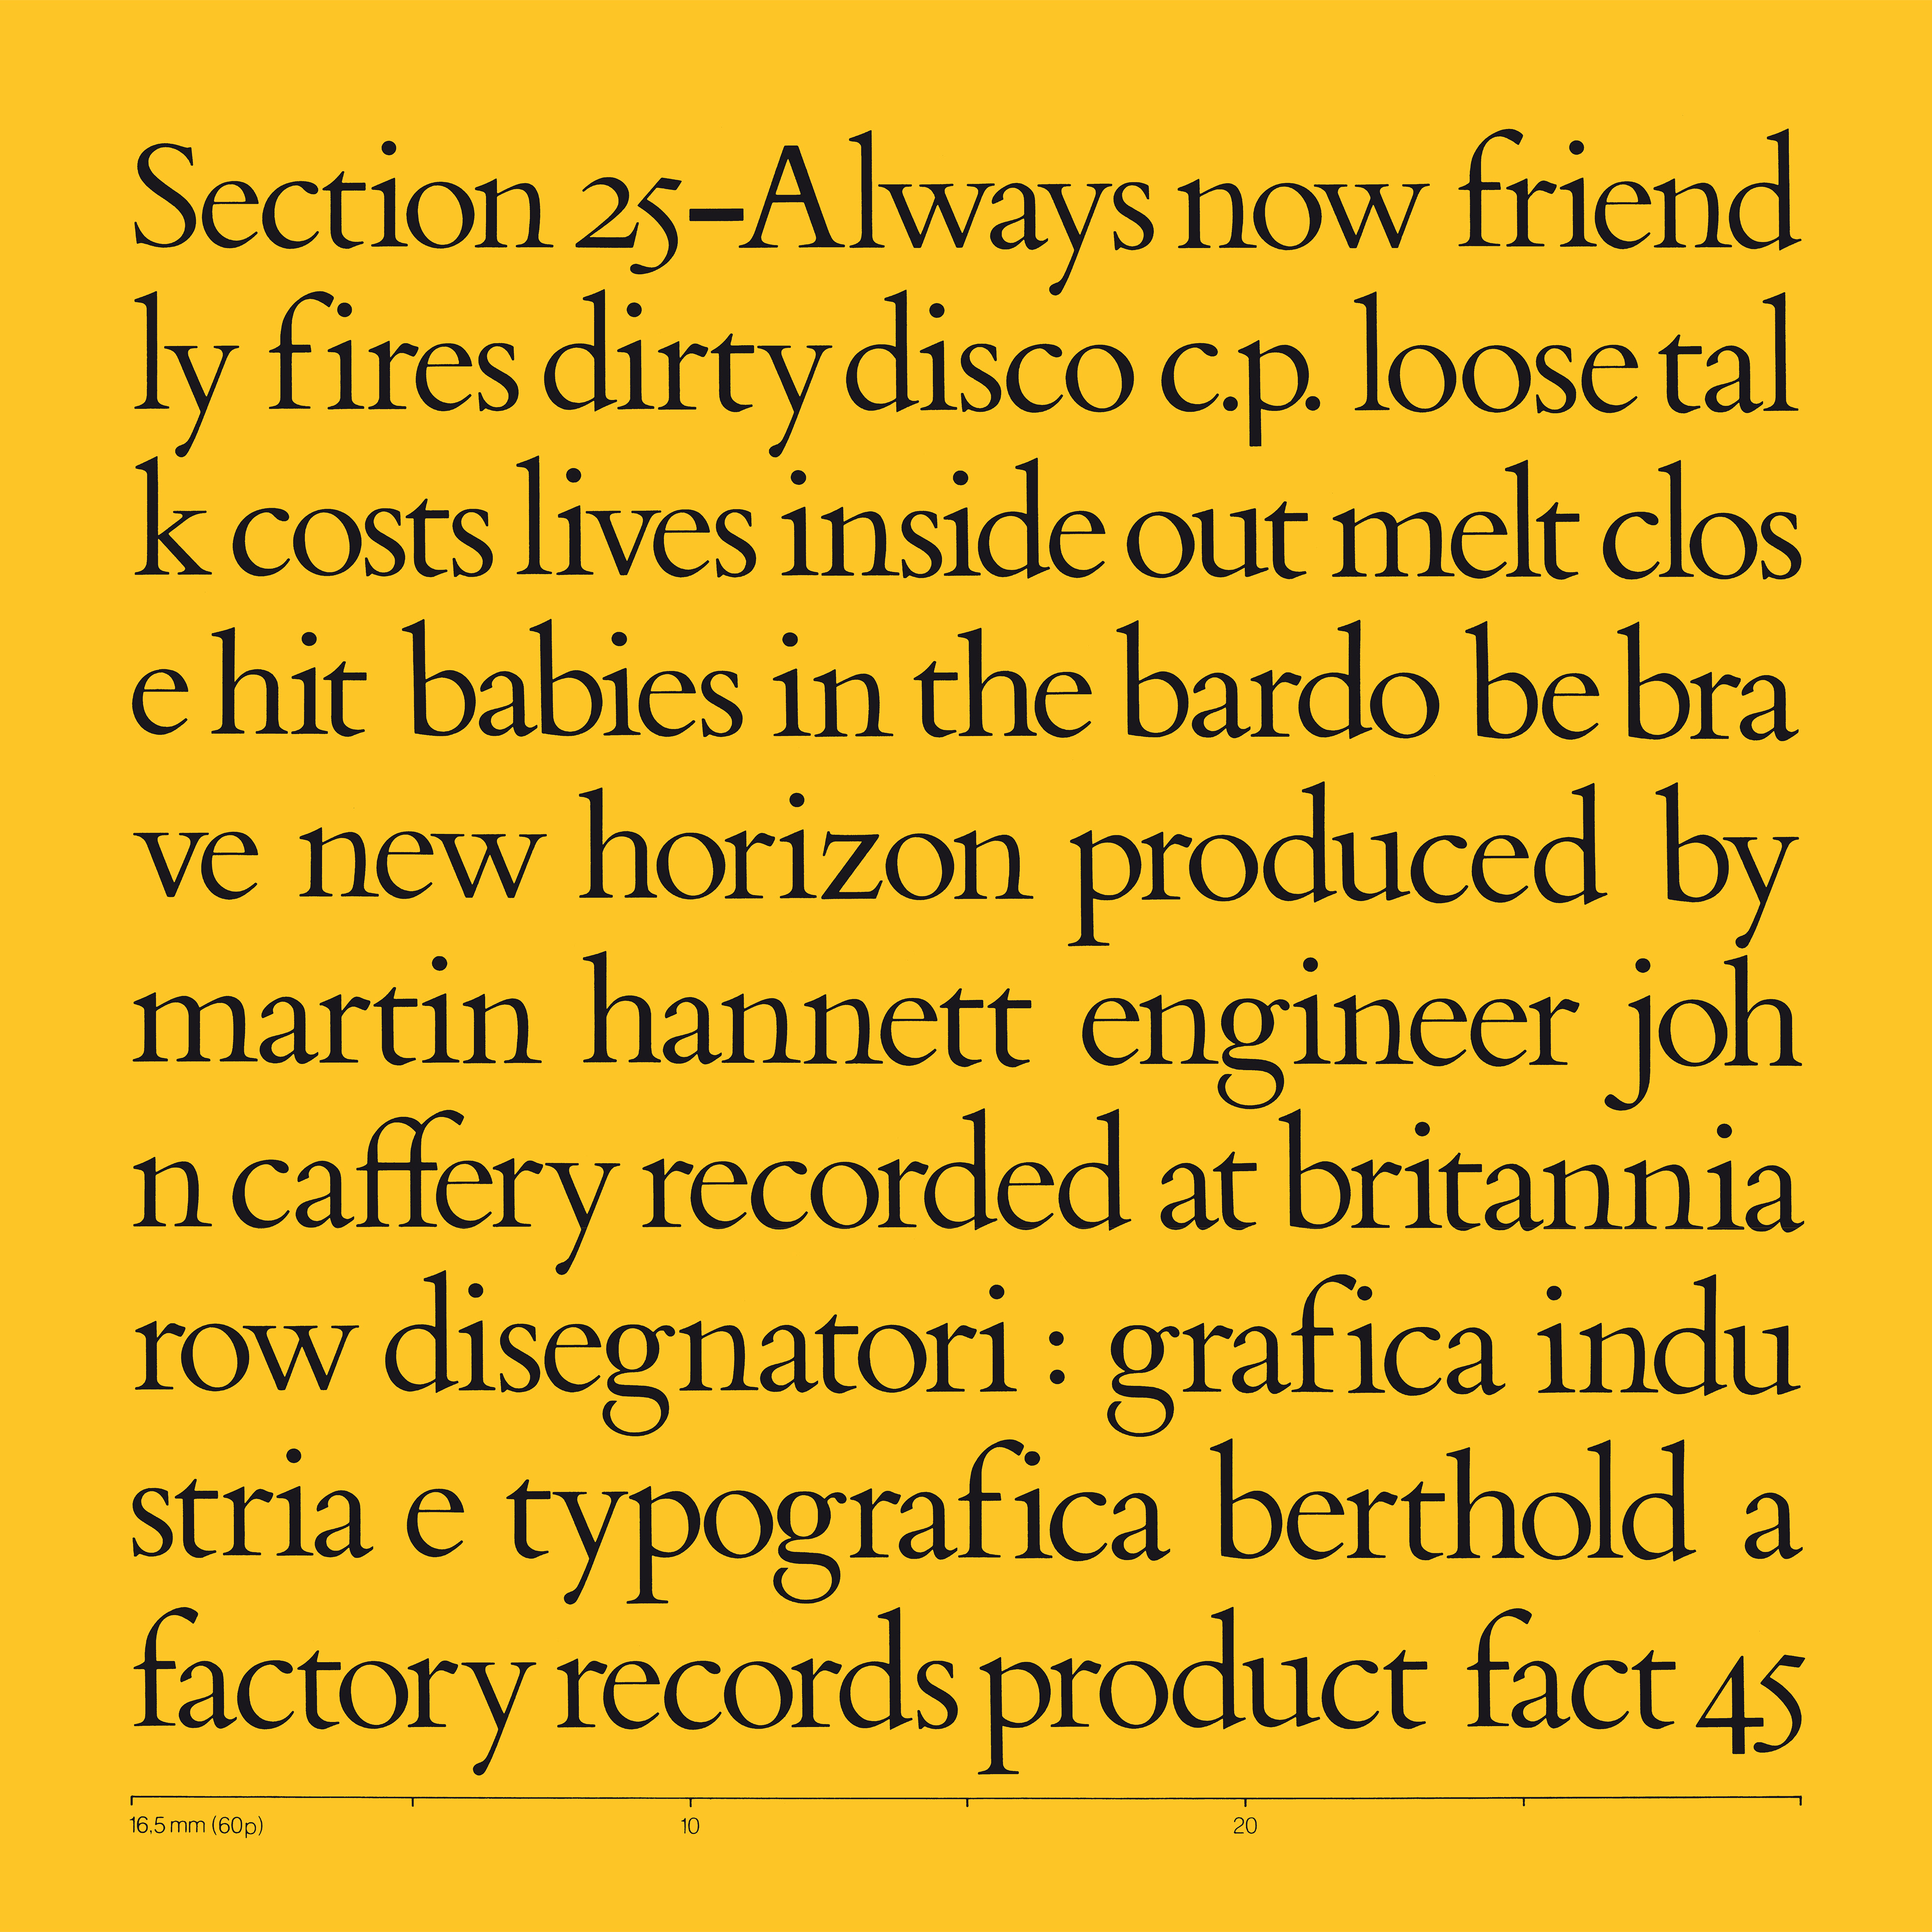 Section 25 - Always Now box set [FBN 3-045]